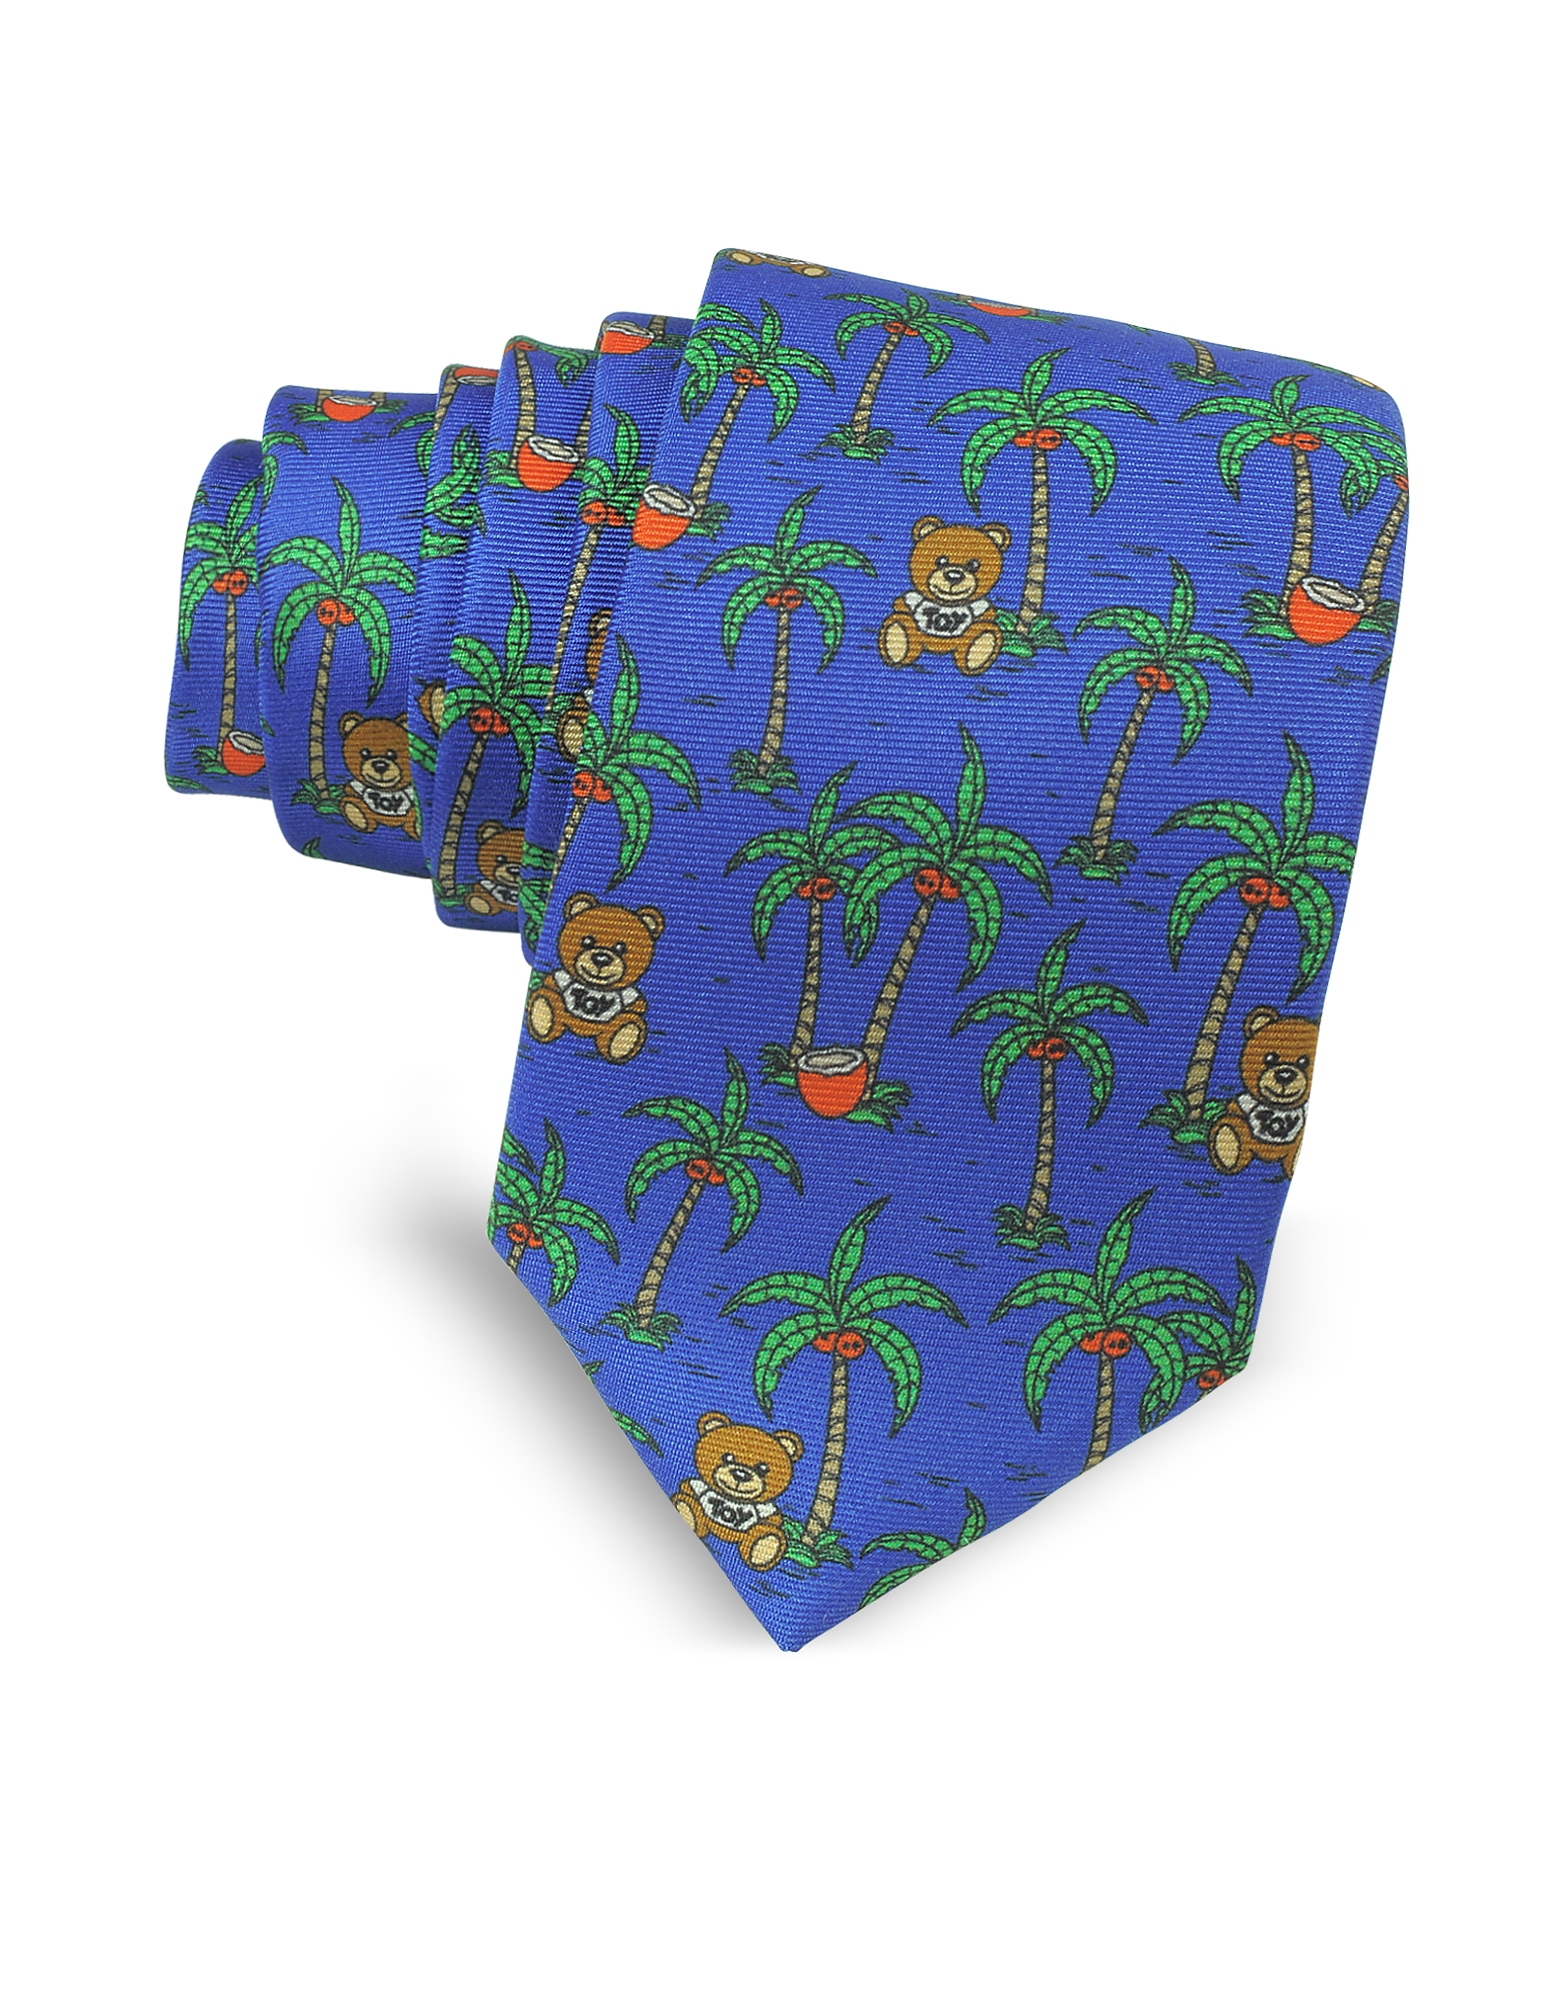 Moschino Ties, Blue Palms and Teddy Bears Printed Twill Silk Narrow Tie